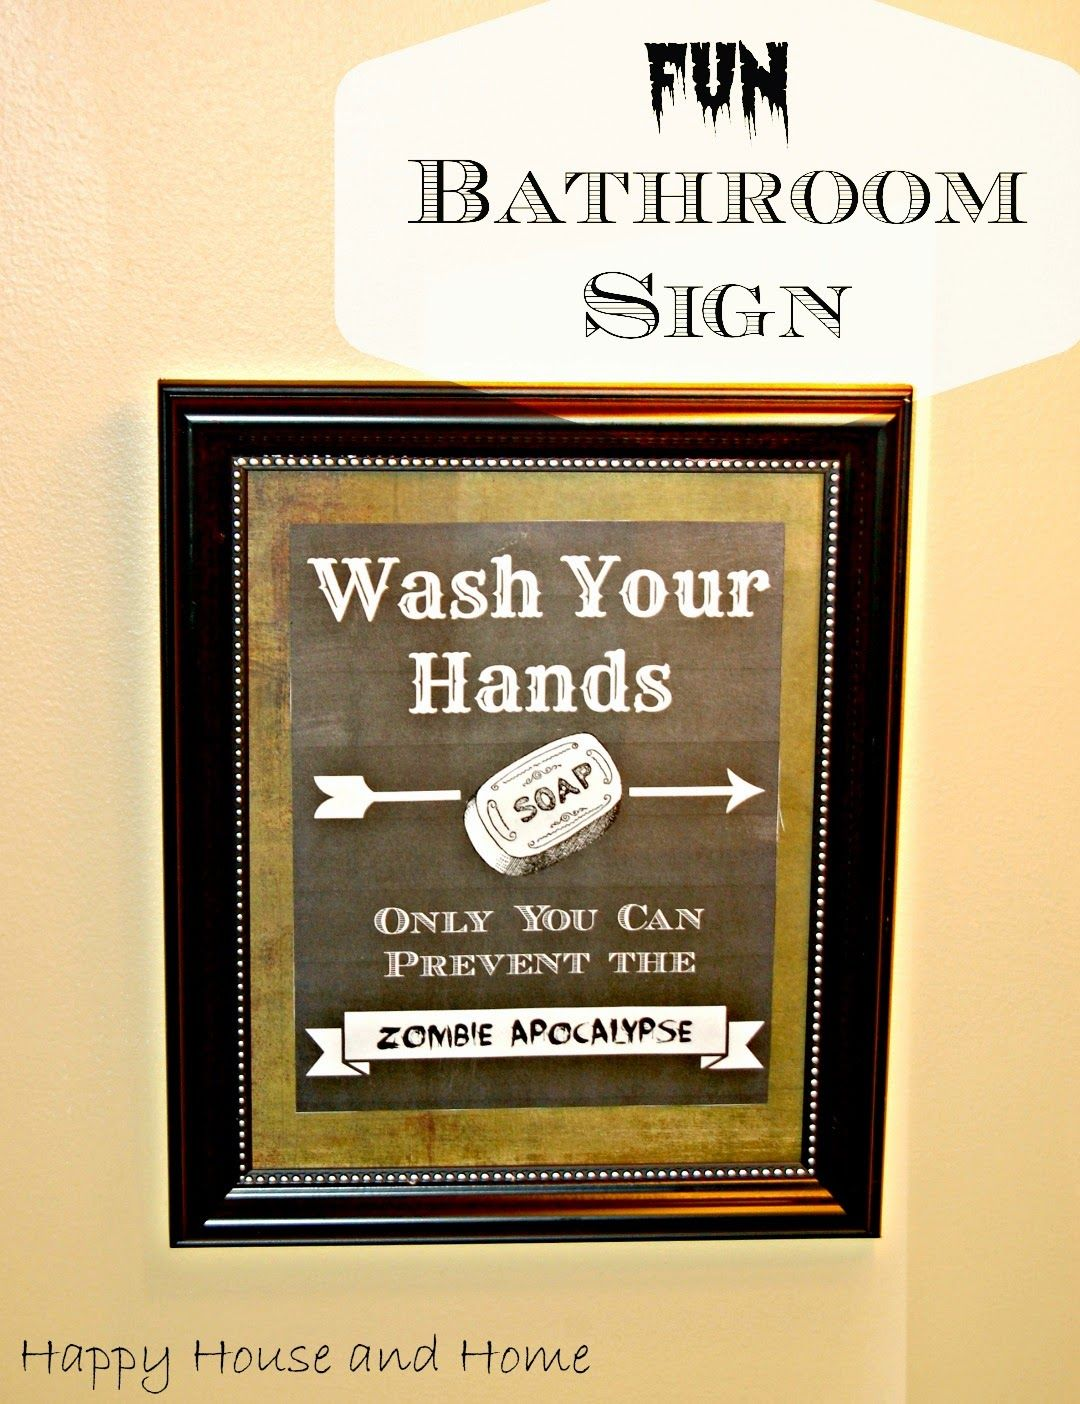 Printable bathroom sign - This Free Printable Makes The Cutest Fun Bathroom Sign Wash Your Hands For The